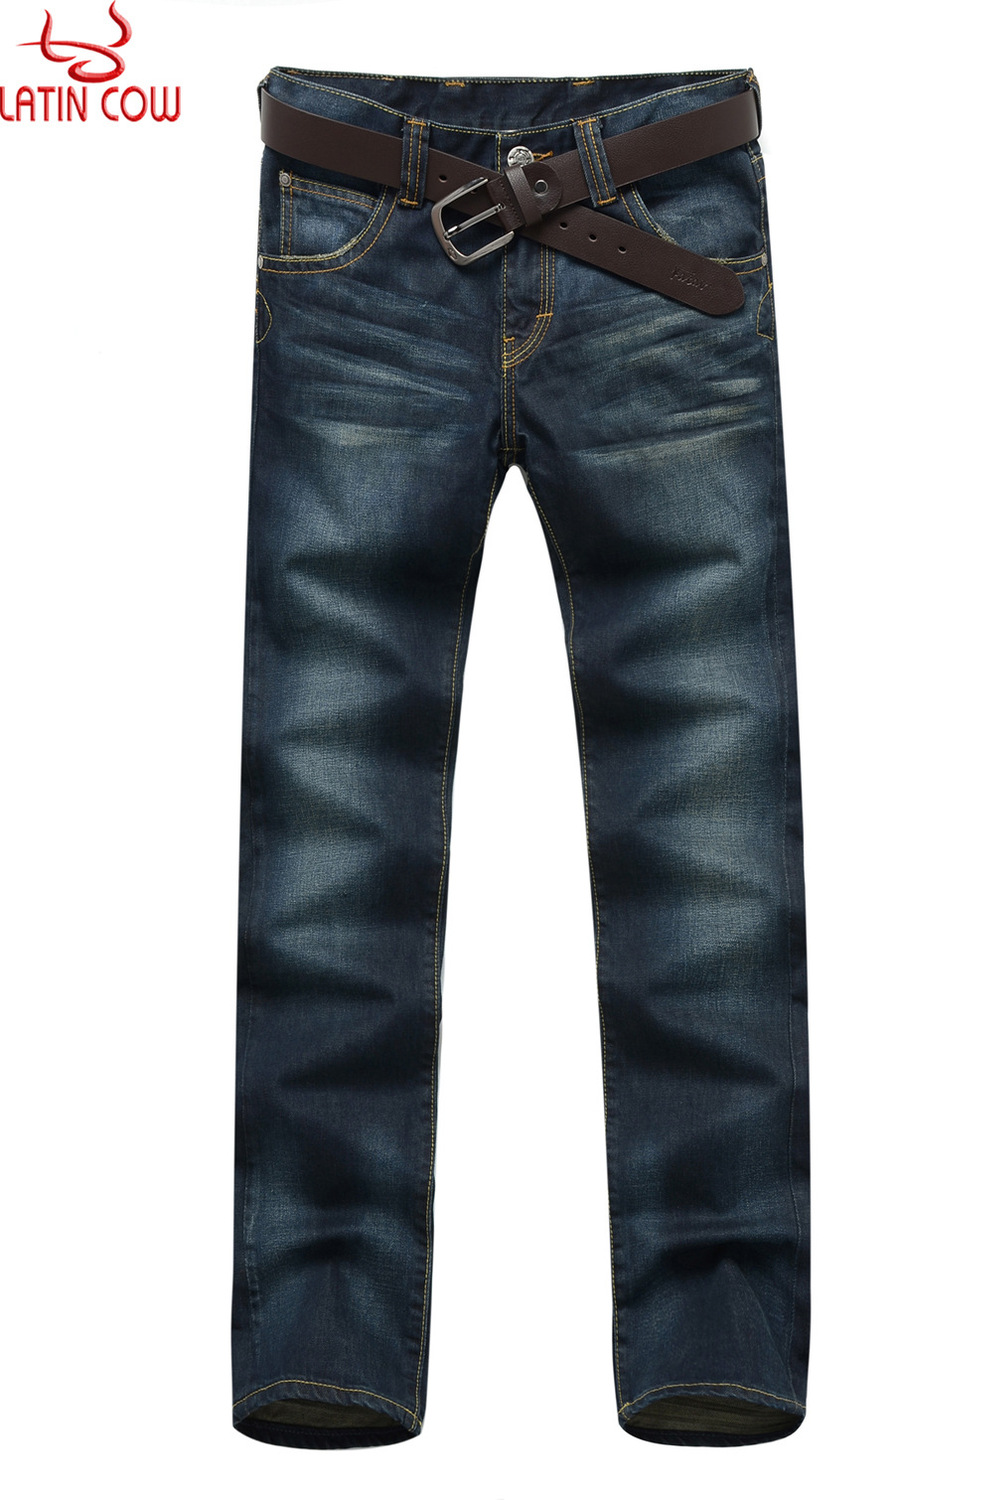 From cowboys to hippies, indie rockers to preppy jocks, jeans are that one fashion item that has transcended time, gender and many a fashion wardrobe. Which is why finding the best jeans brands for men is still oh-so important nowadays. But the denim jeans' openness to the masses doesn't mean buying a pair comes naturally.